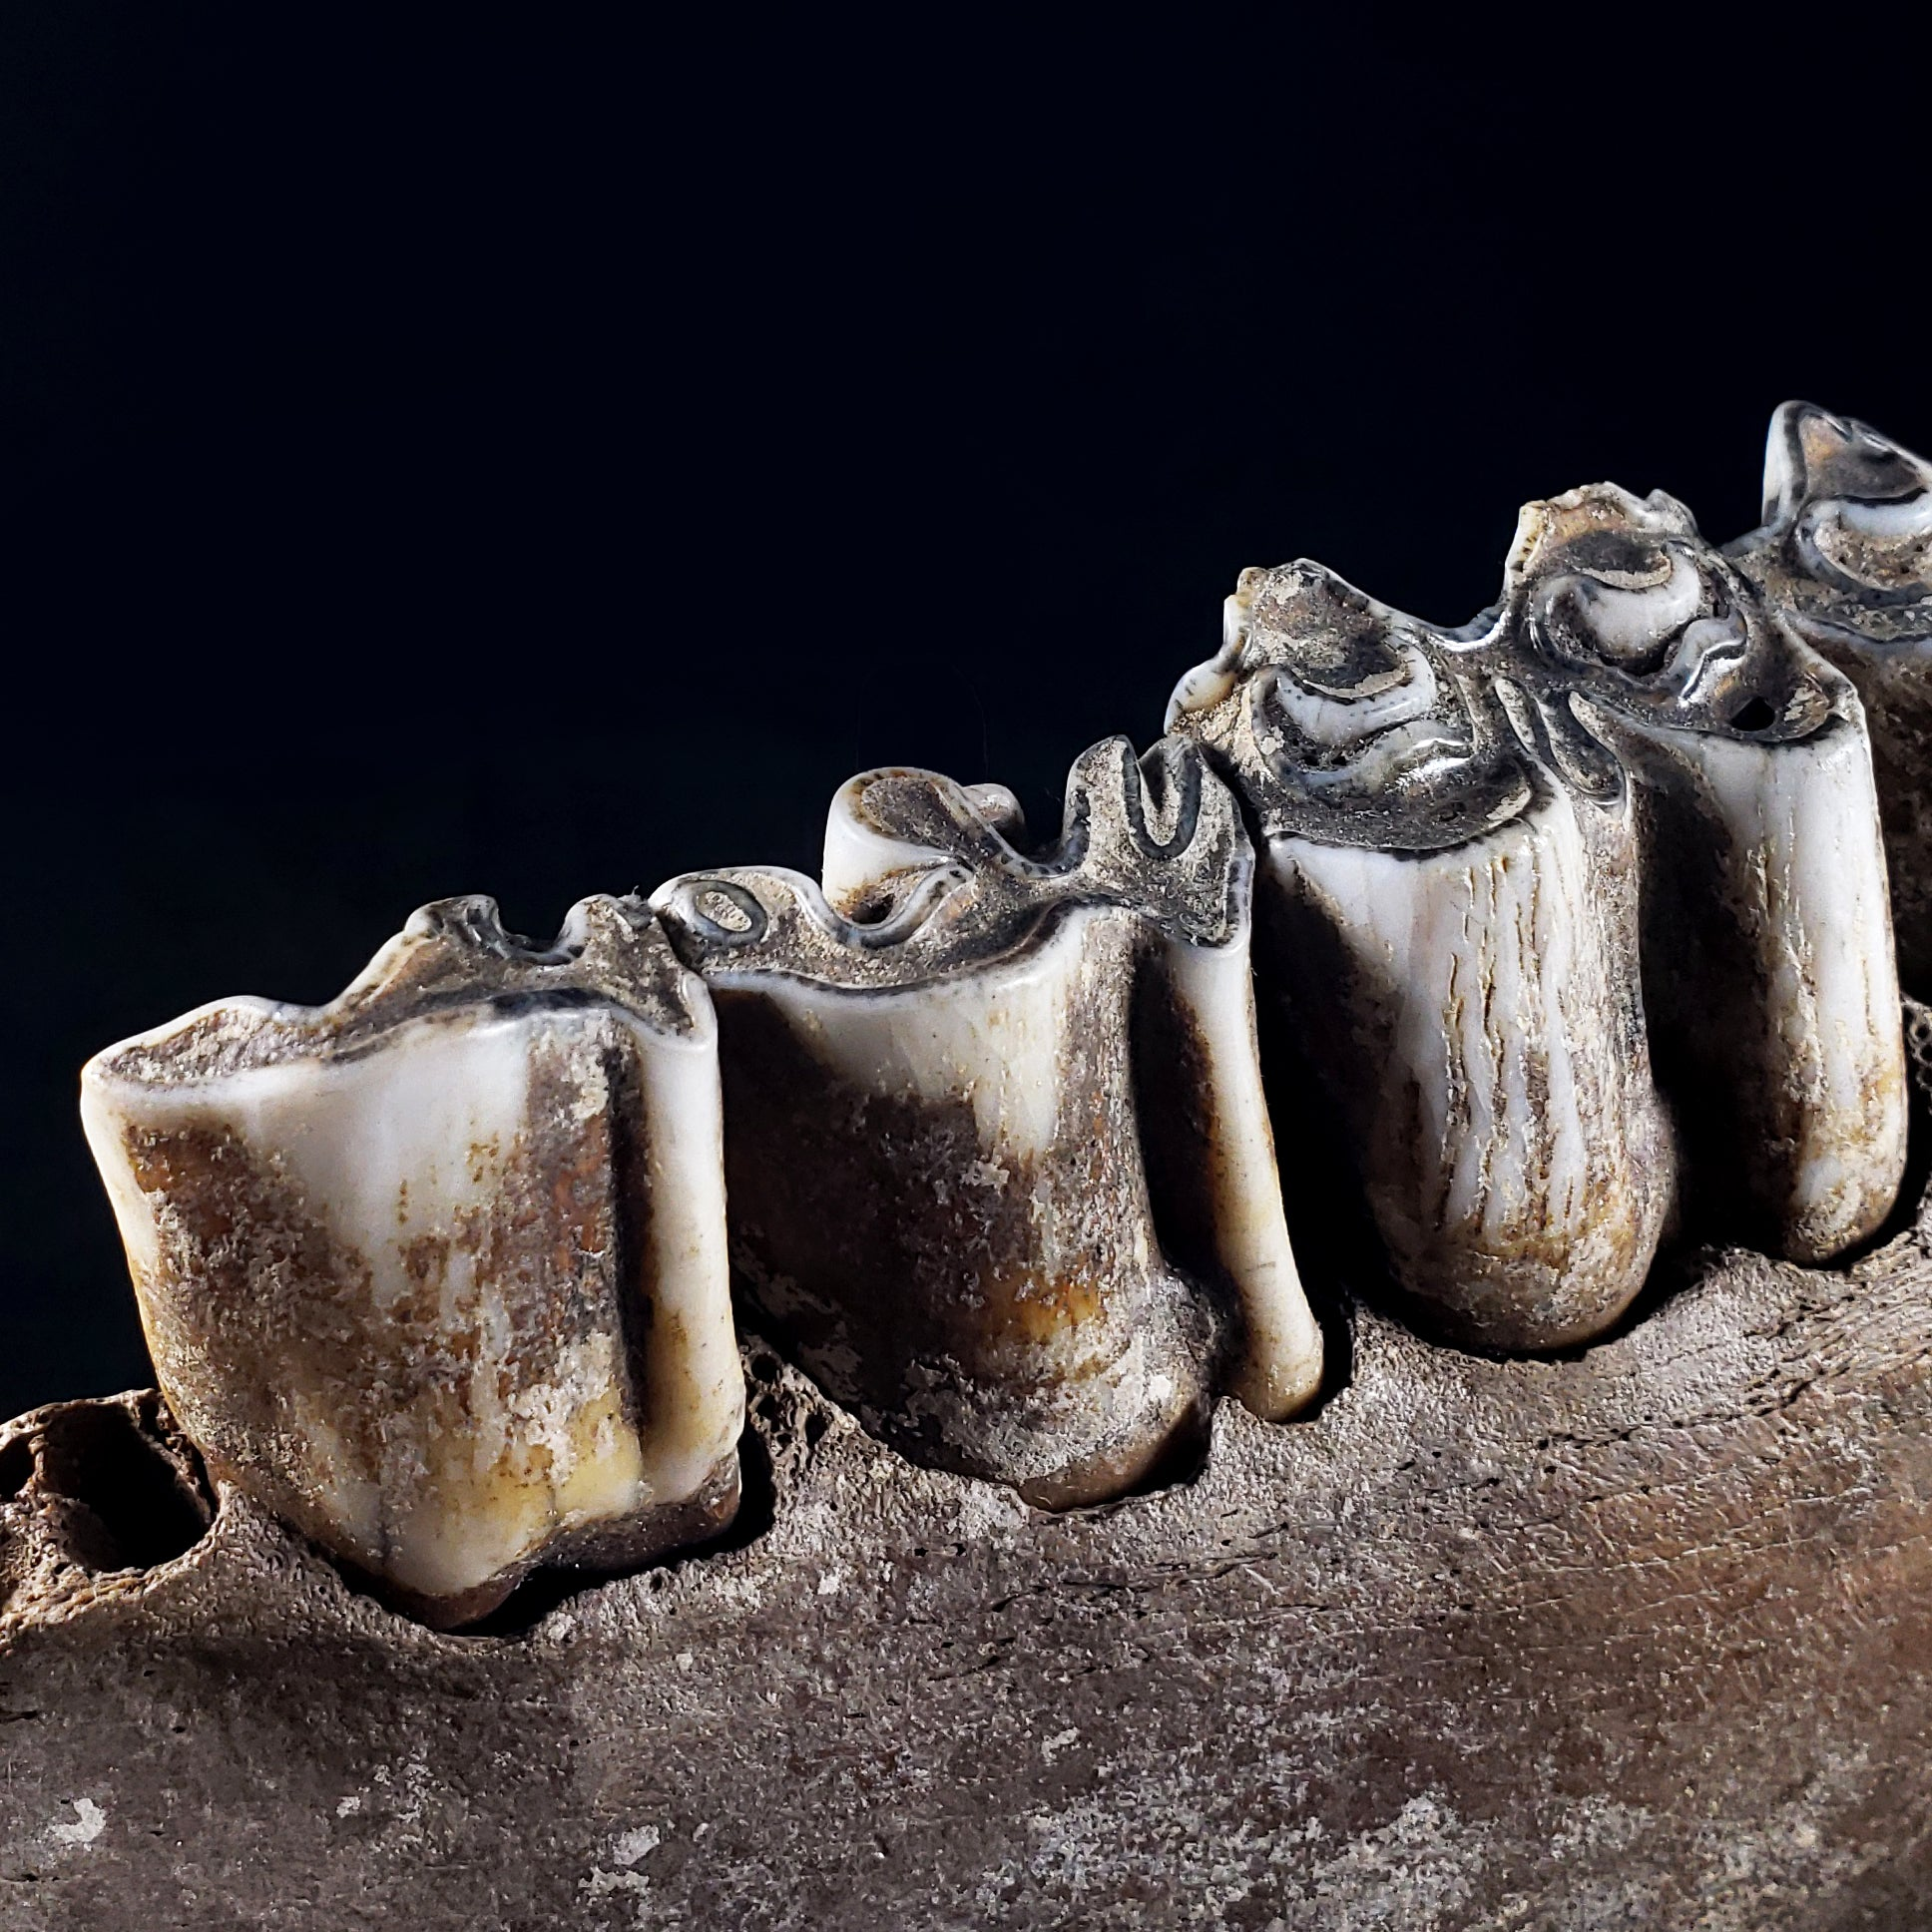 Fossilized Bison Jaw from Nishnabotna River, Iowa